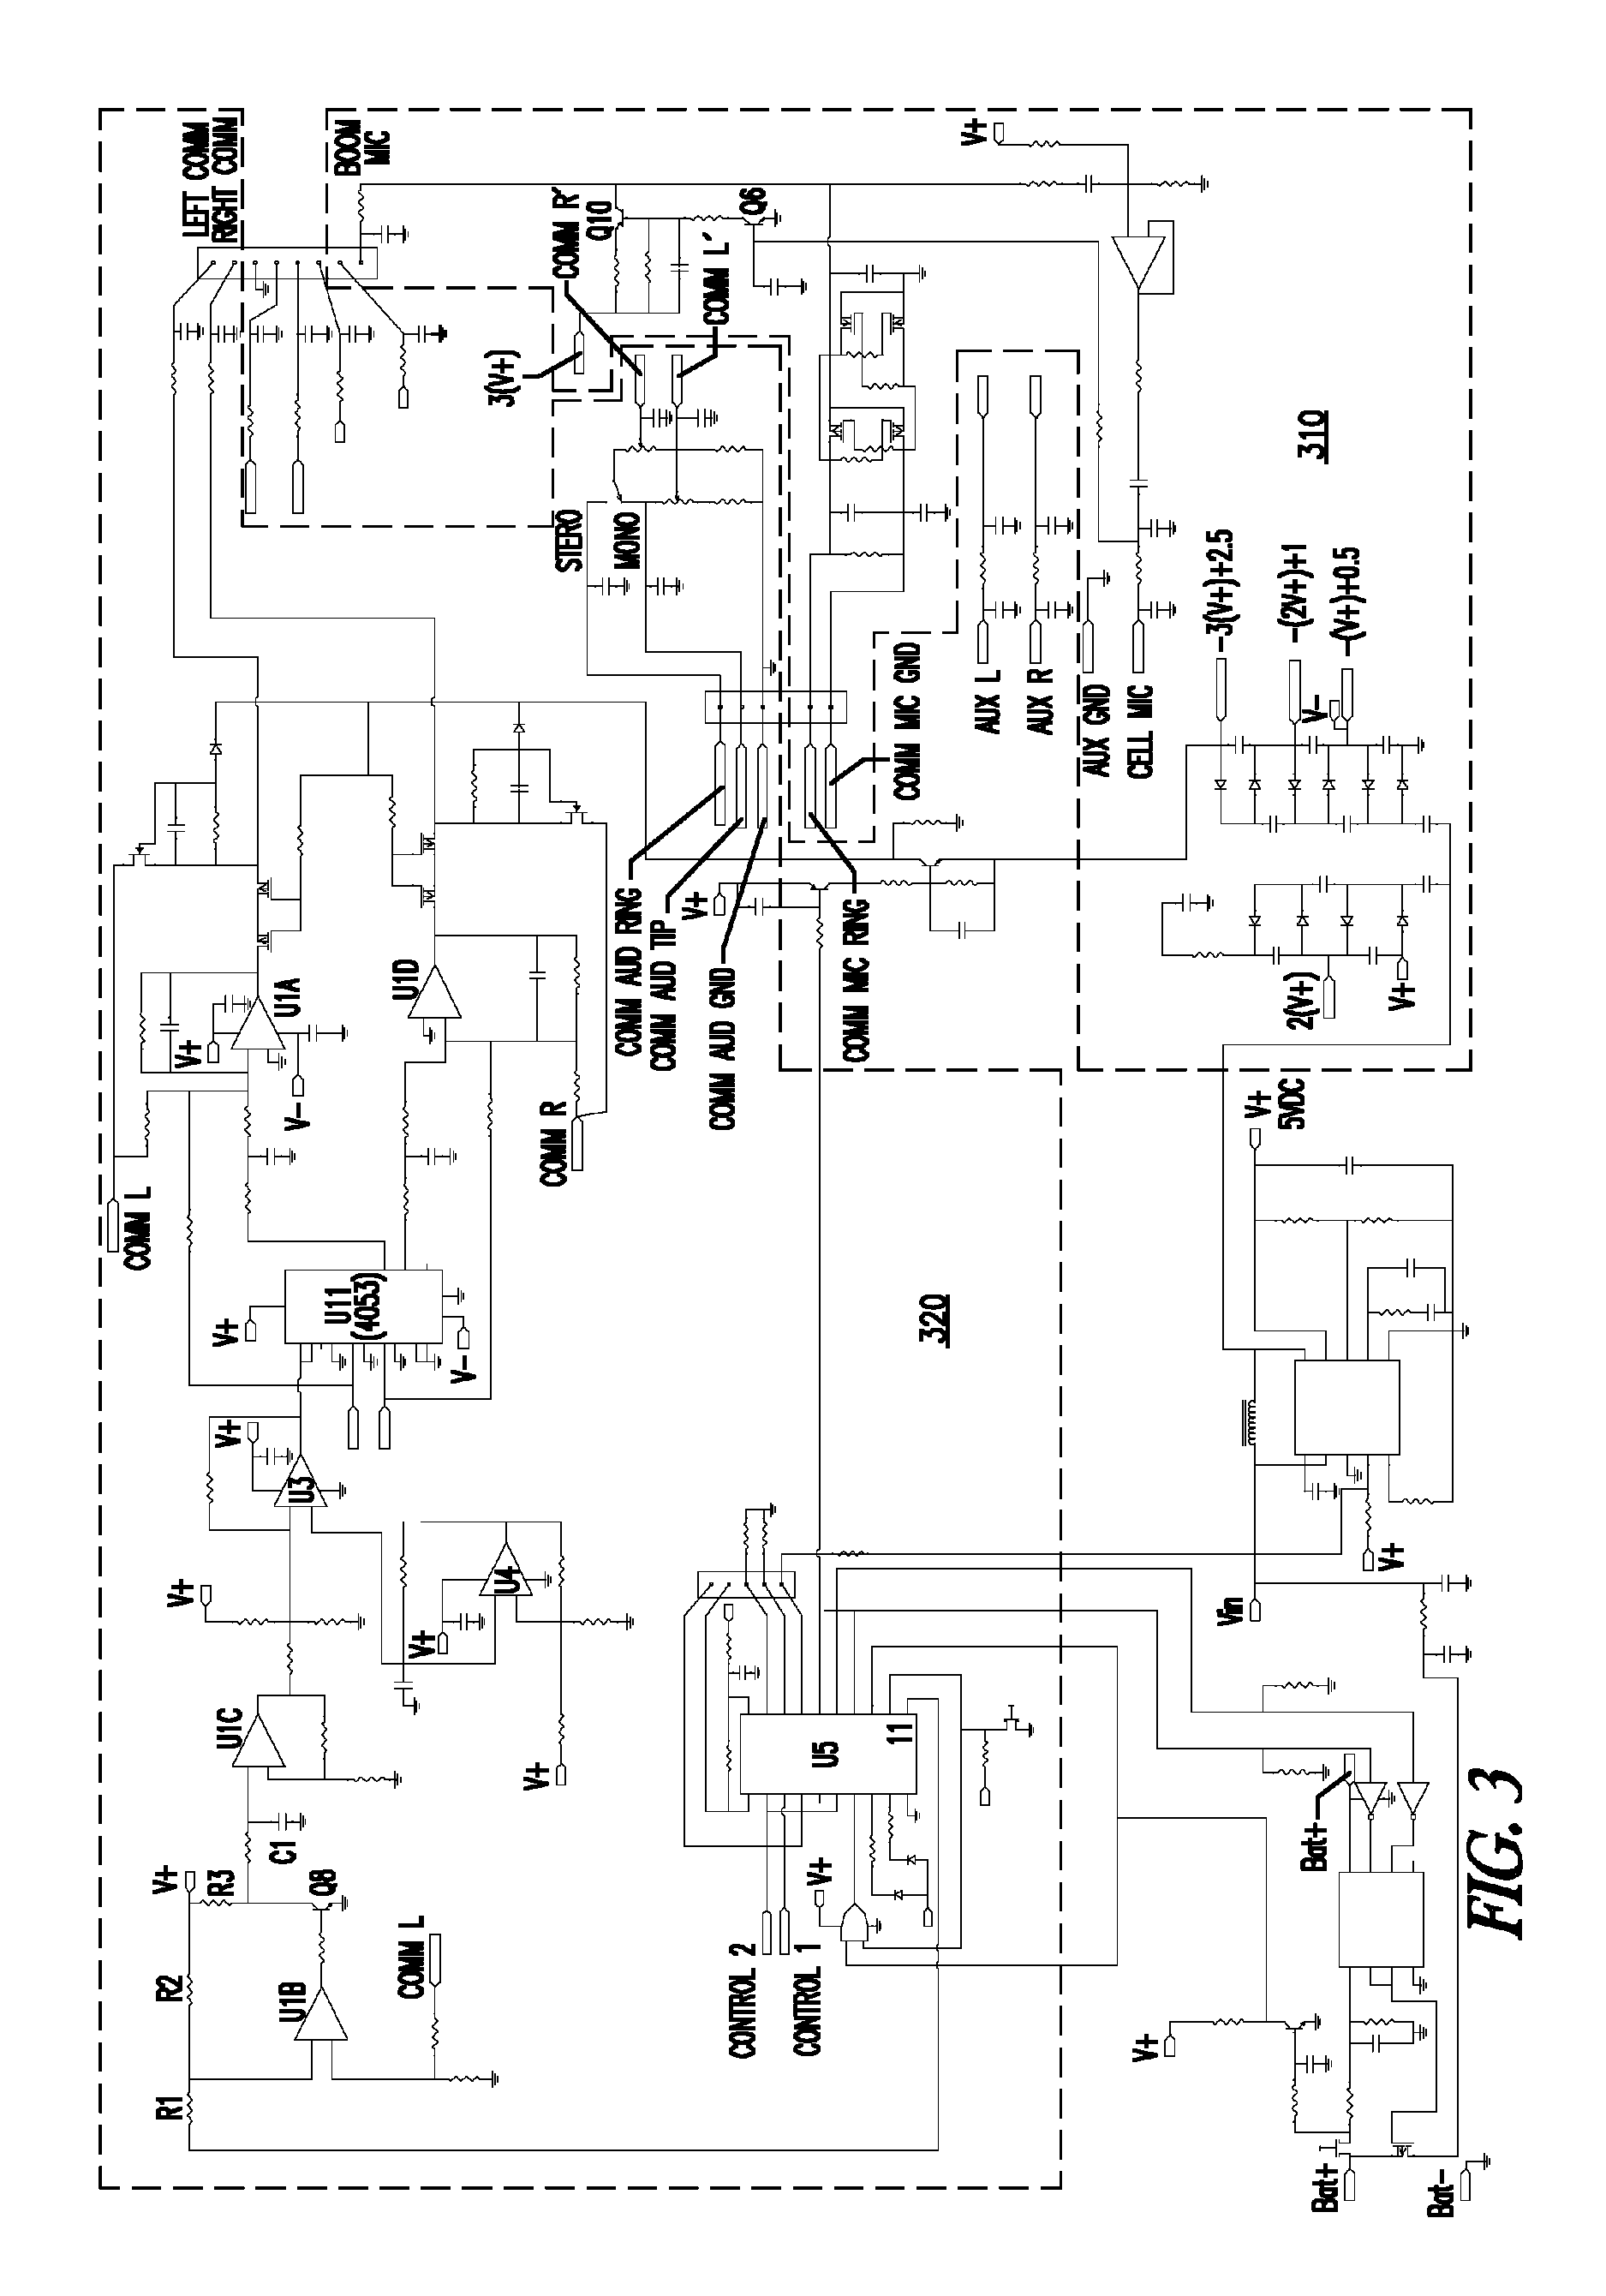 Headset Wiring Diagram Free For You Iphone Schematics Patent Us8437812 With Auxiliary Input S Jack Aviation